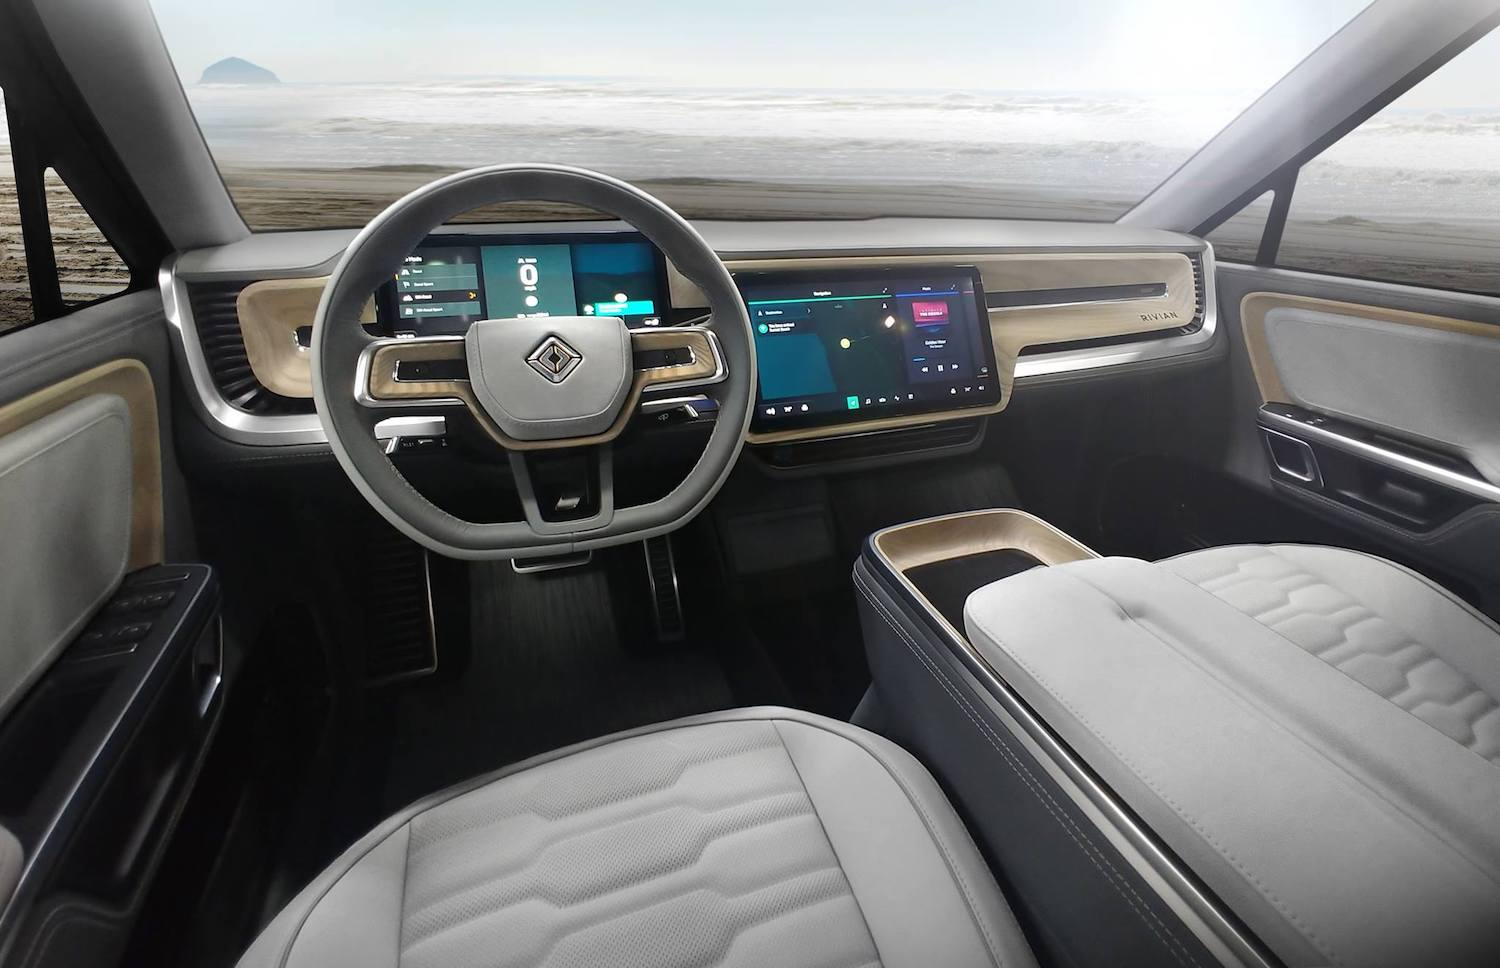 This is a promo photo of The Rivian Interior In The R1T Electric Pickup, parked by the ocean | Rivian